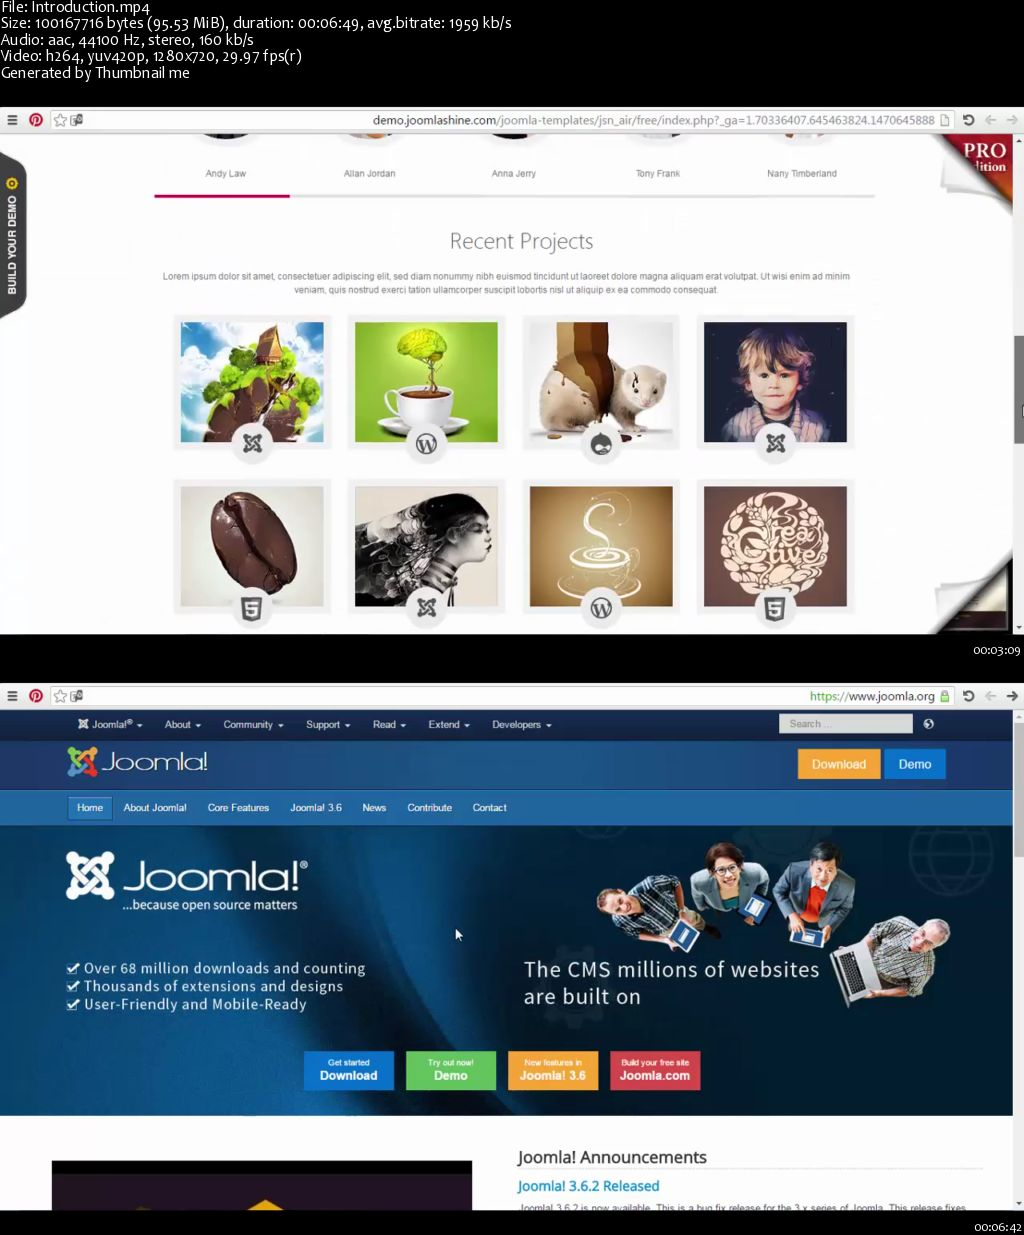 Learn How To Build A Professional Web Site By Using Joomla (2016)